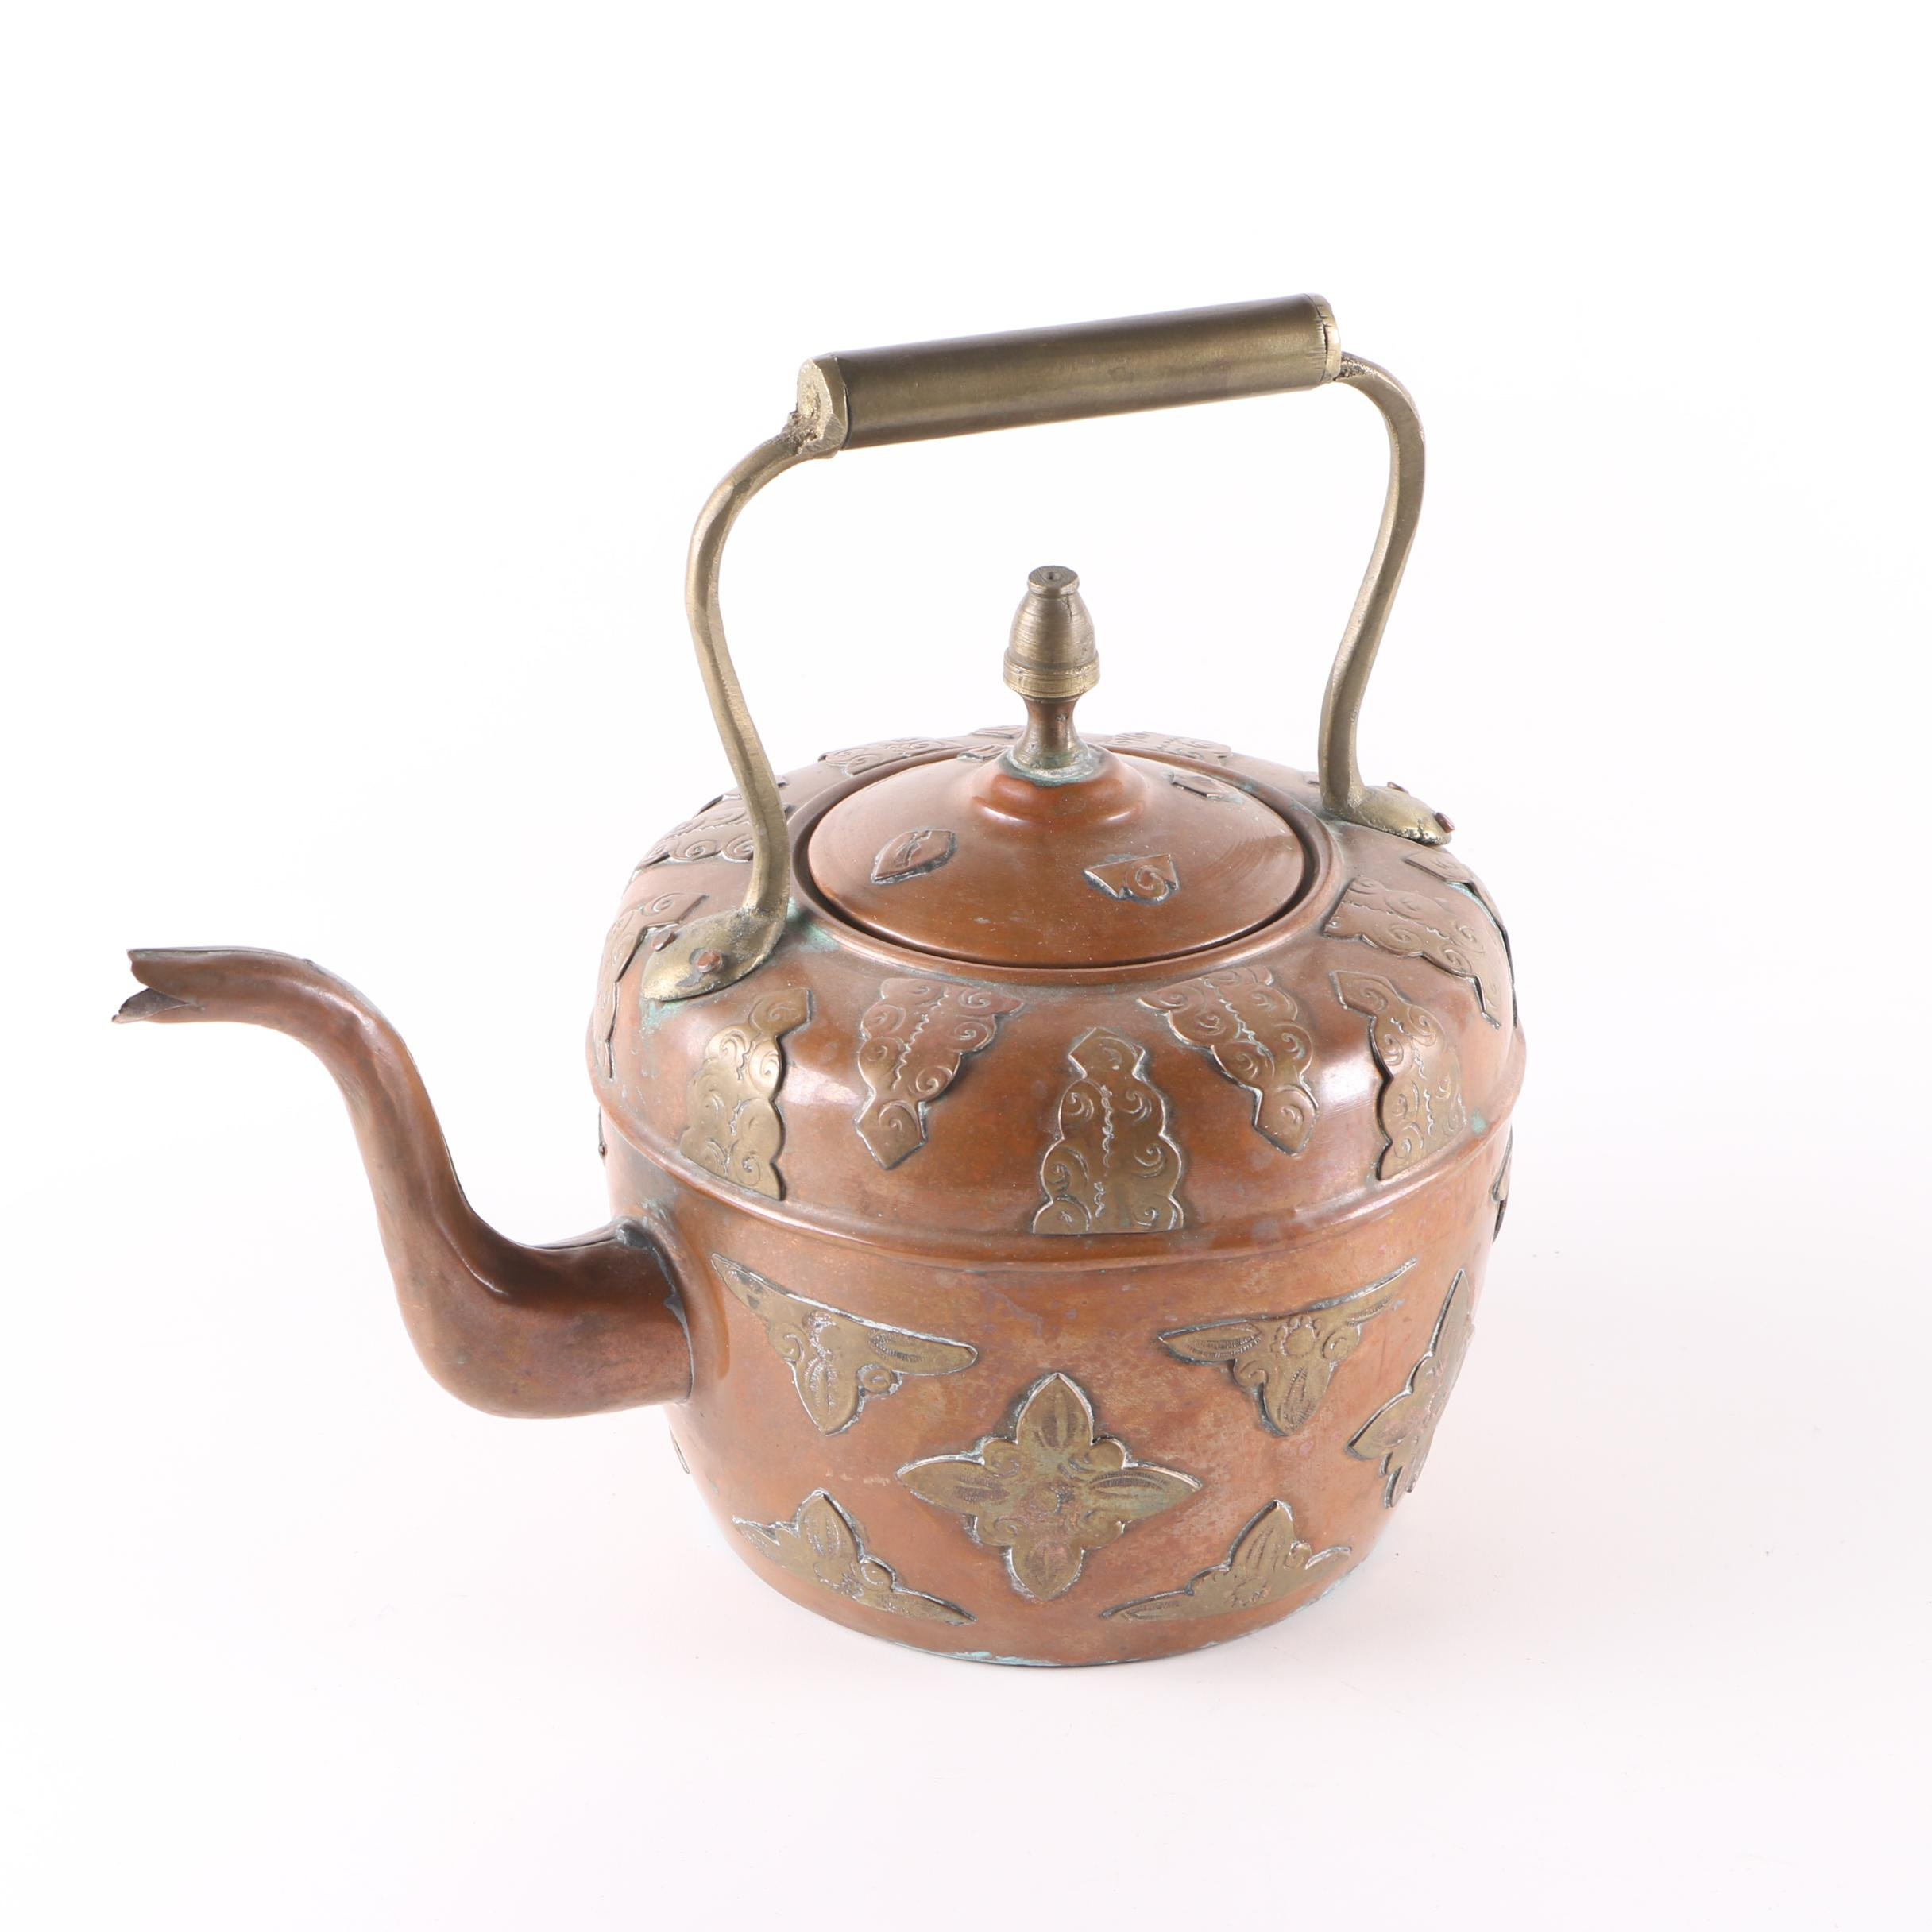 Vintage Moroccan Copper and Bras Tea Kettle